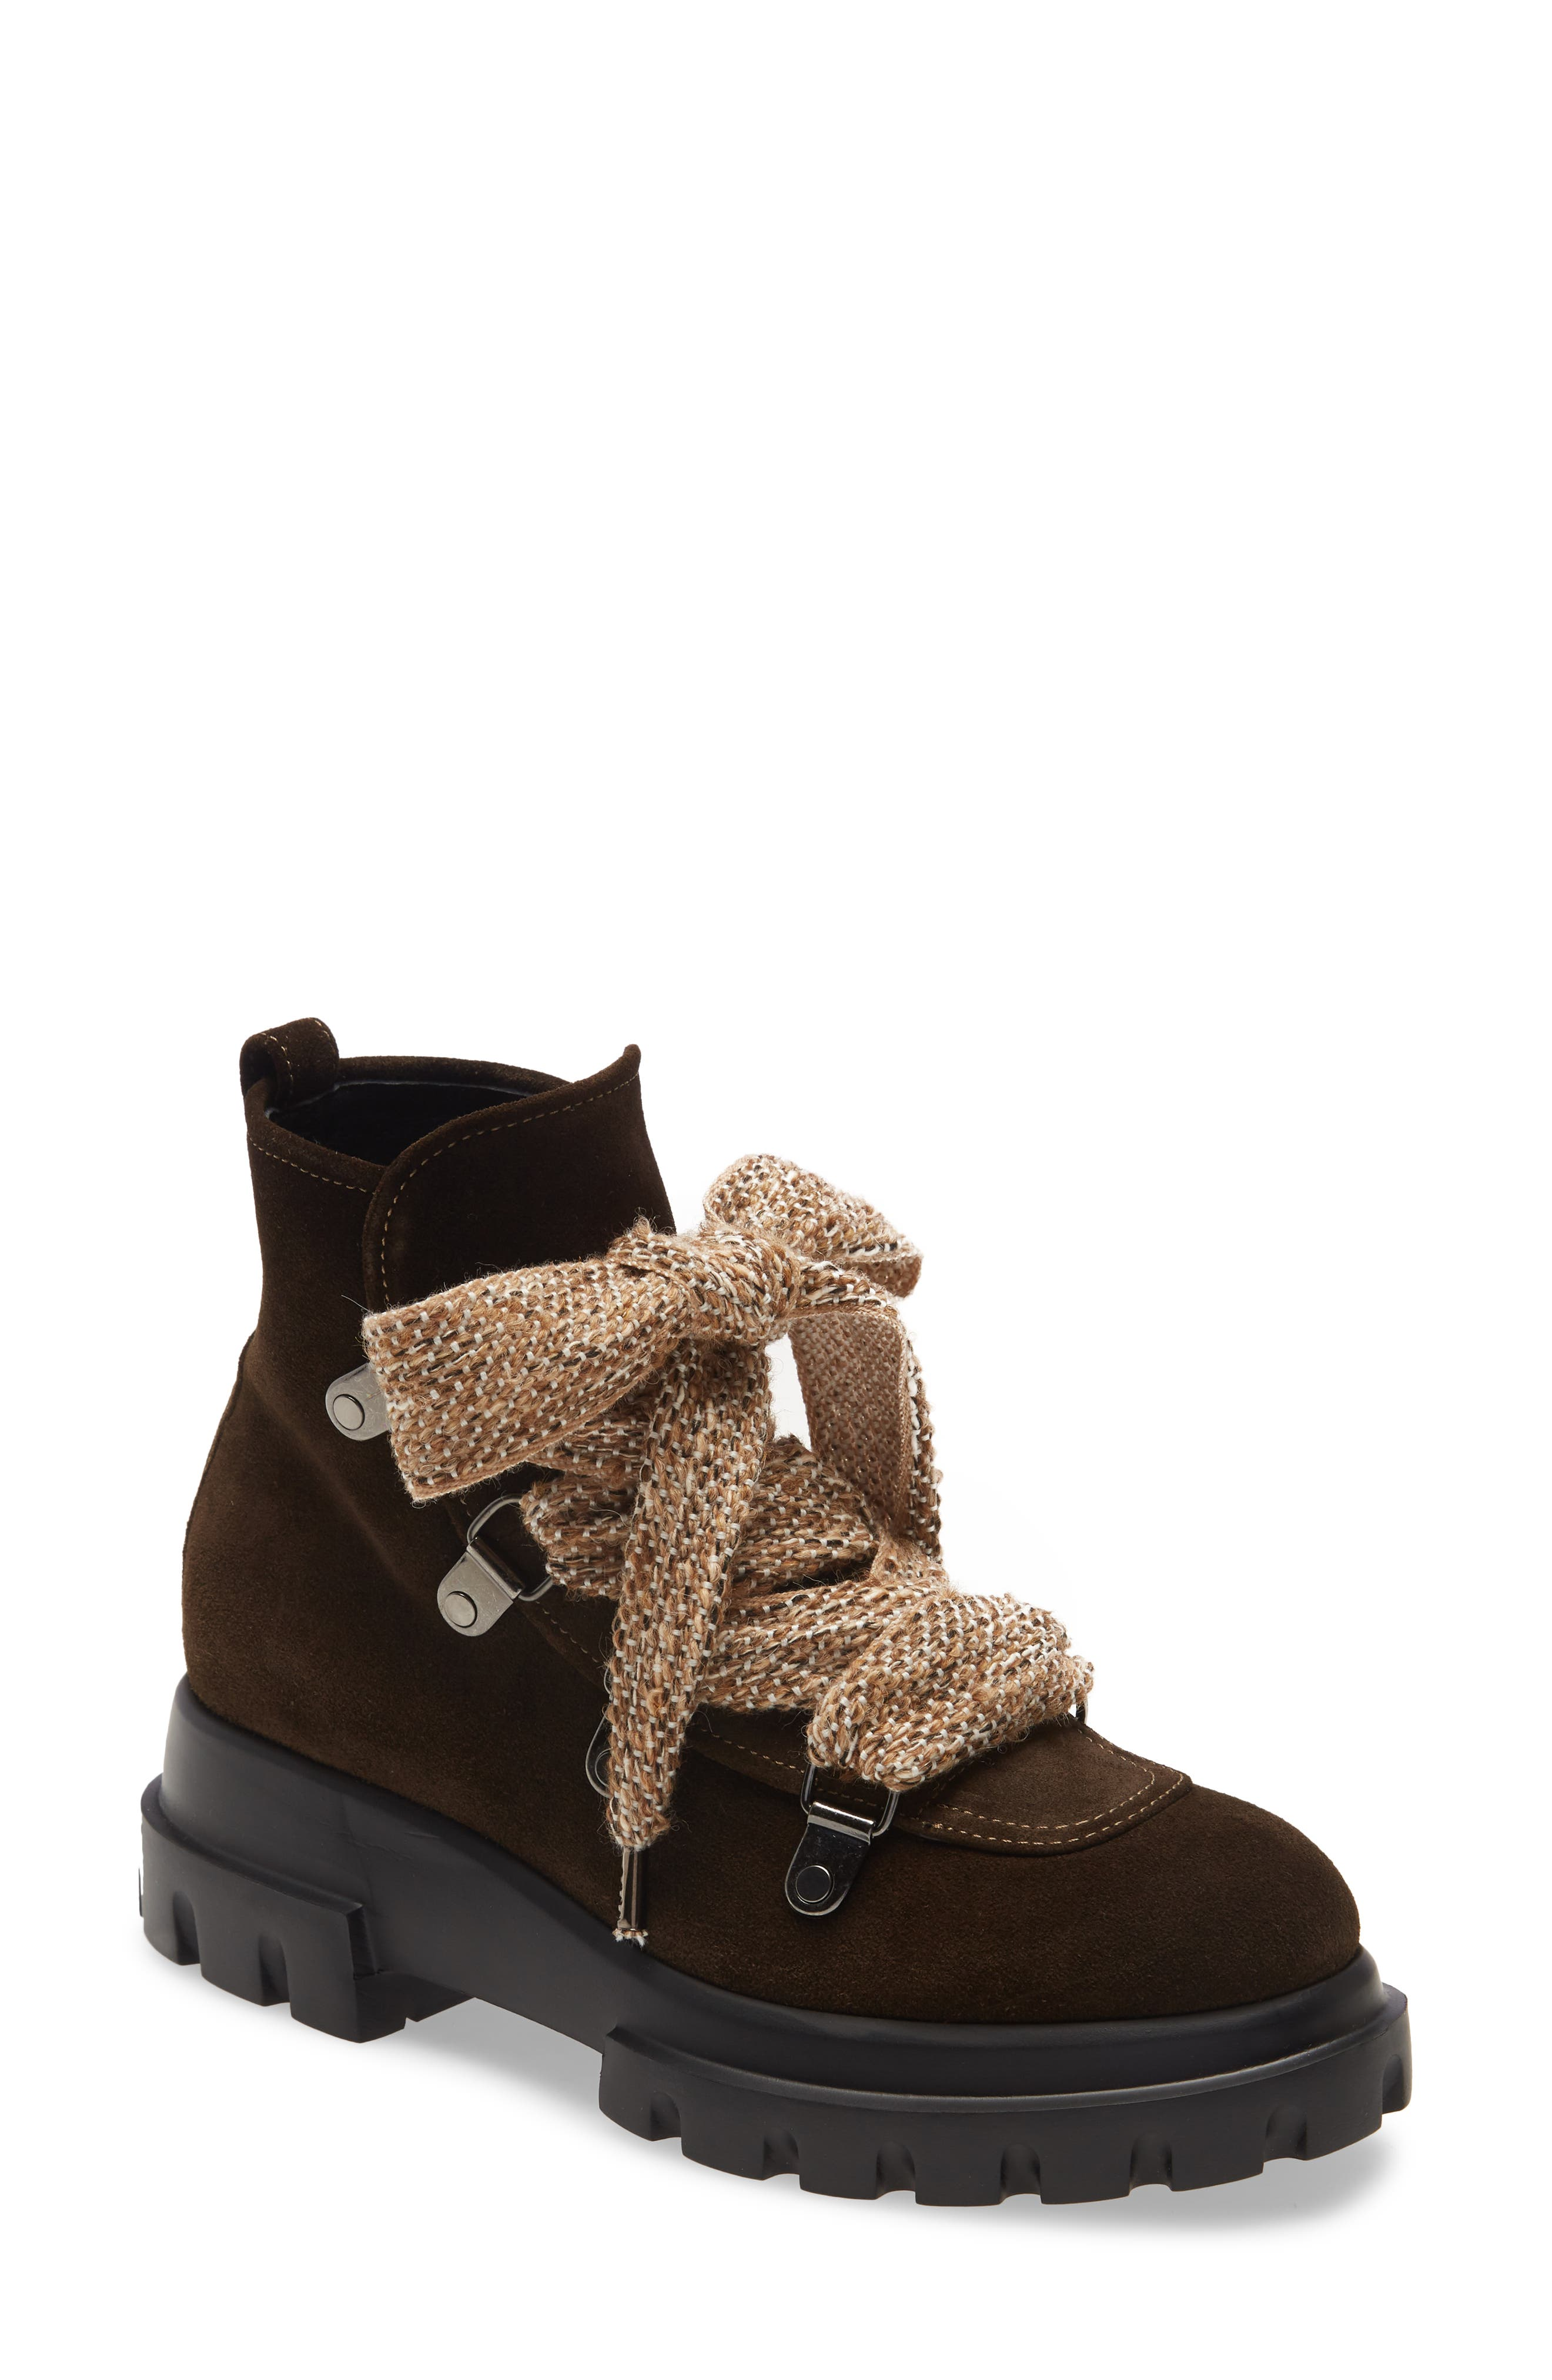 Bold lacing and a smooth finish add sophistication to this modern hiker boot set on a hefty platform and toothy lug sole. Style Name: Agl Lug Hiker Boot (Women). Style Number: 6098972. Available in stores.